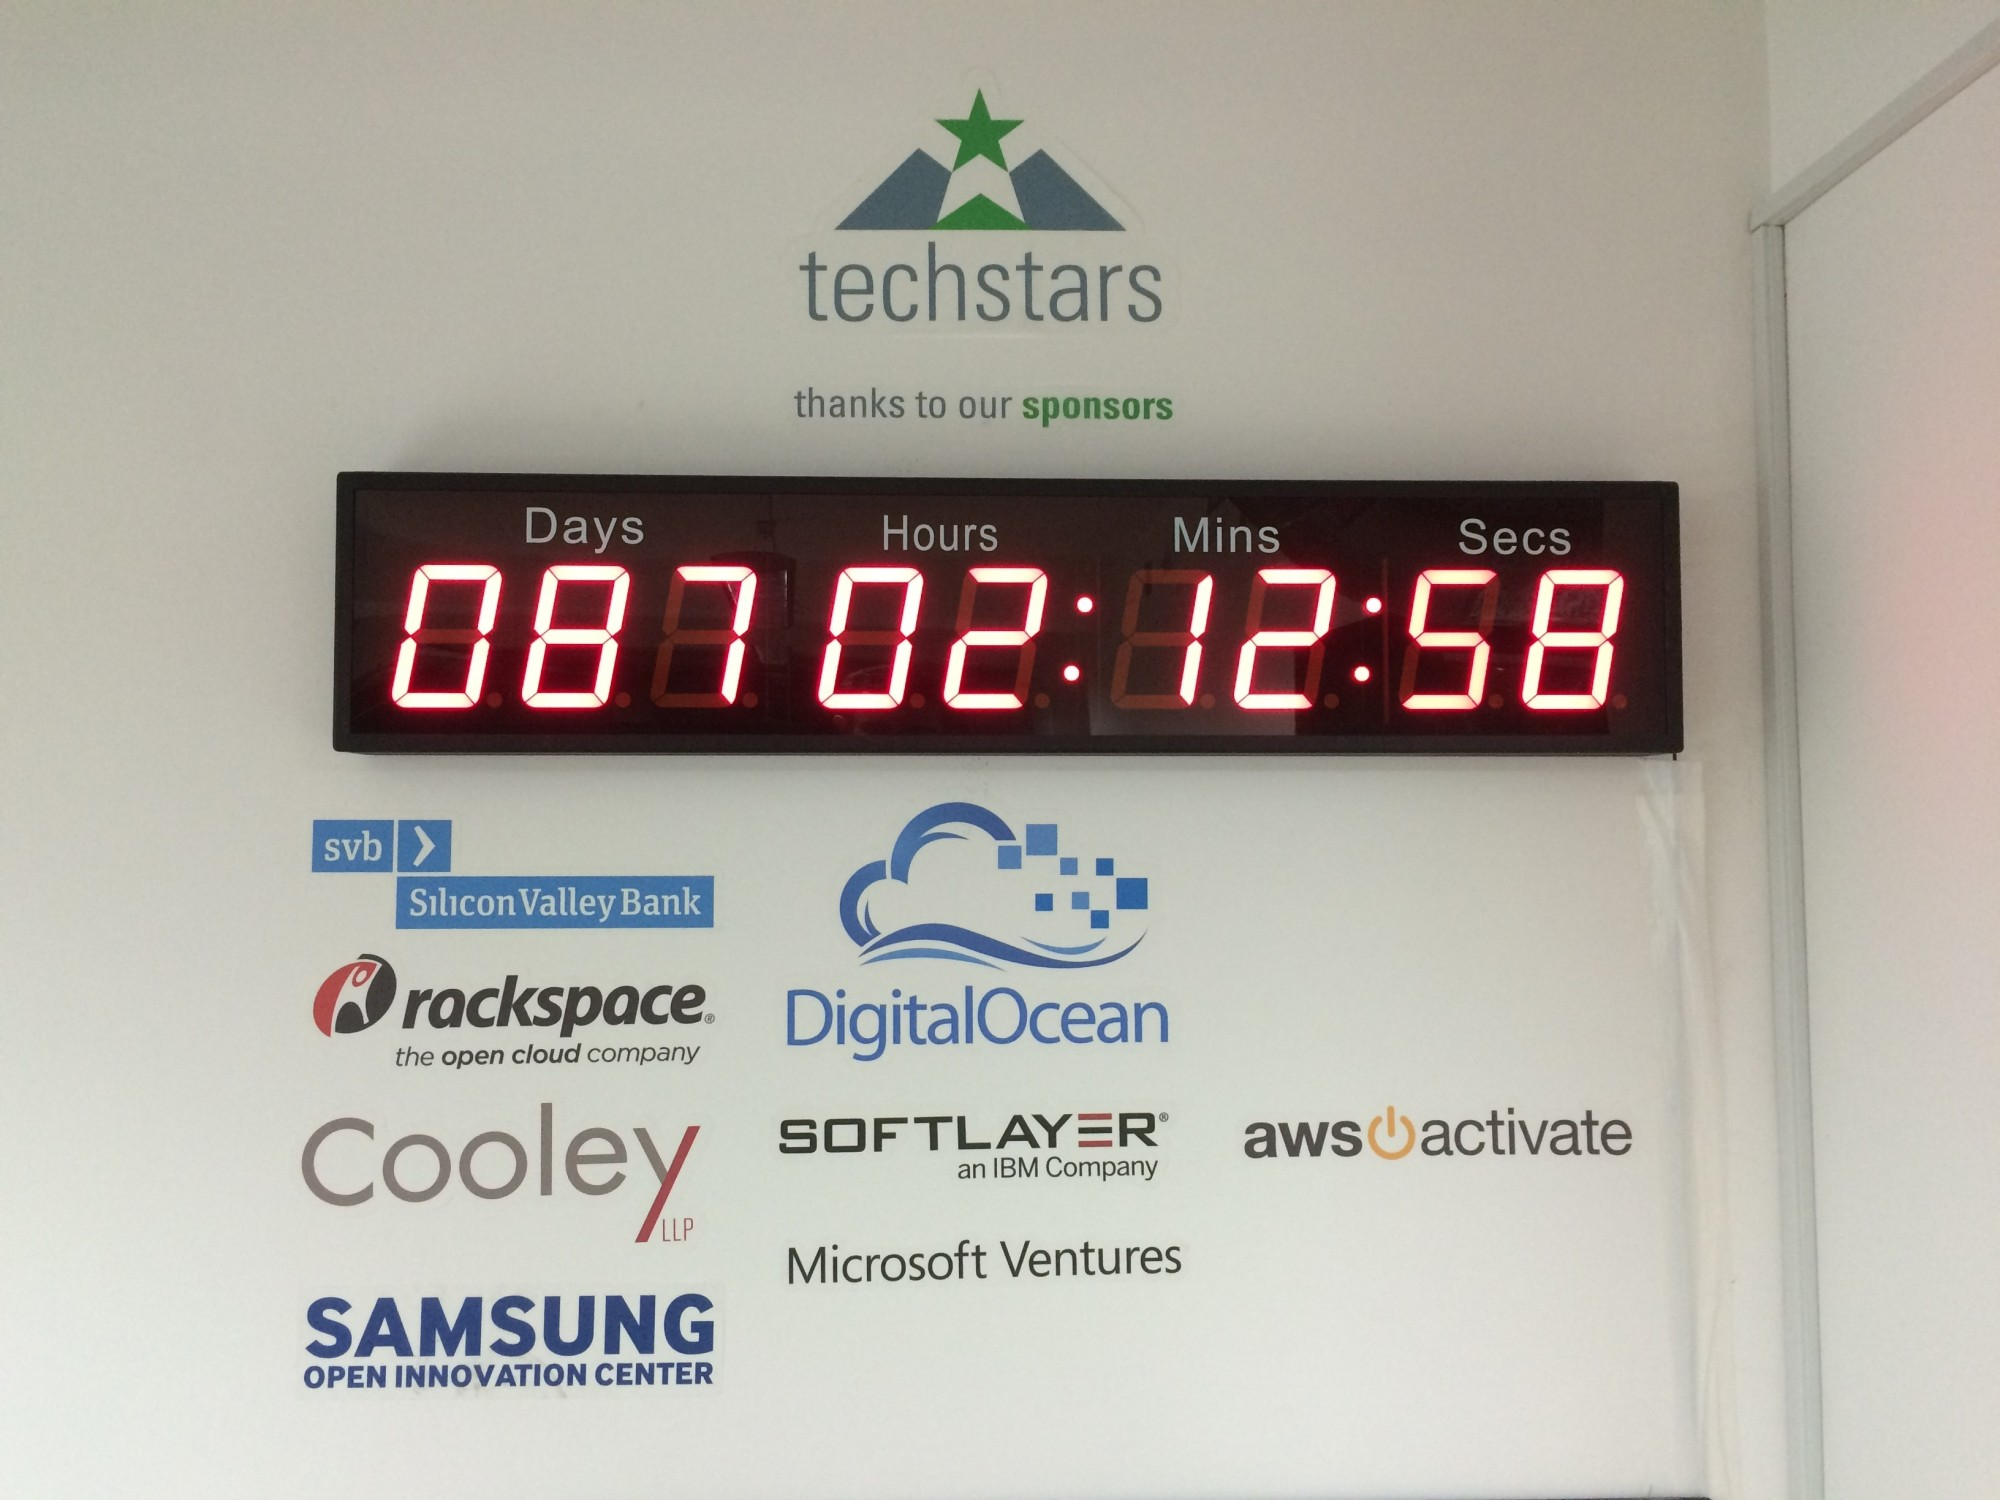 Count down to demo day - 87 days to go!